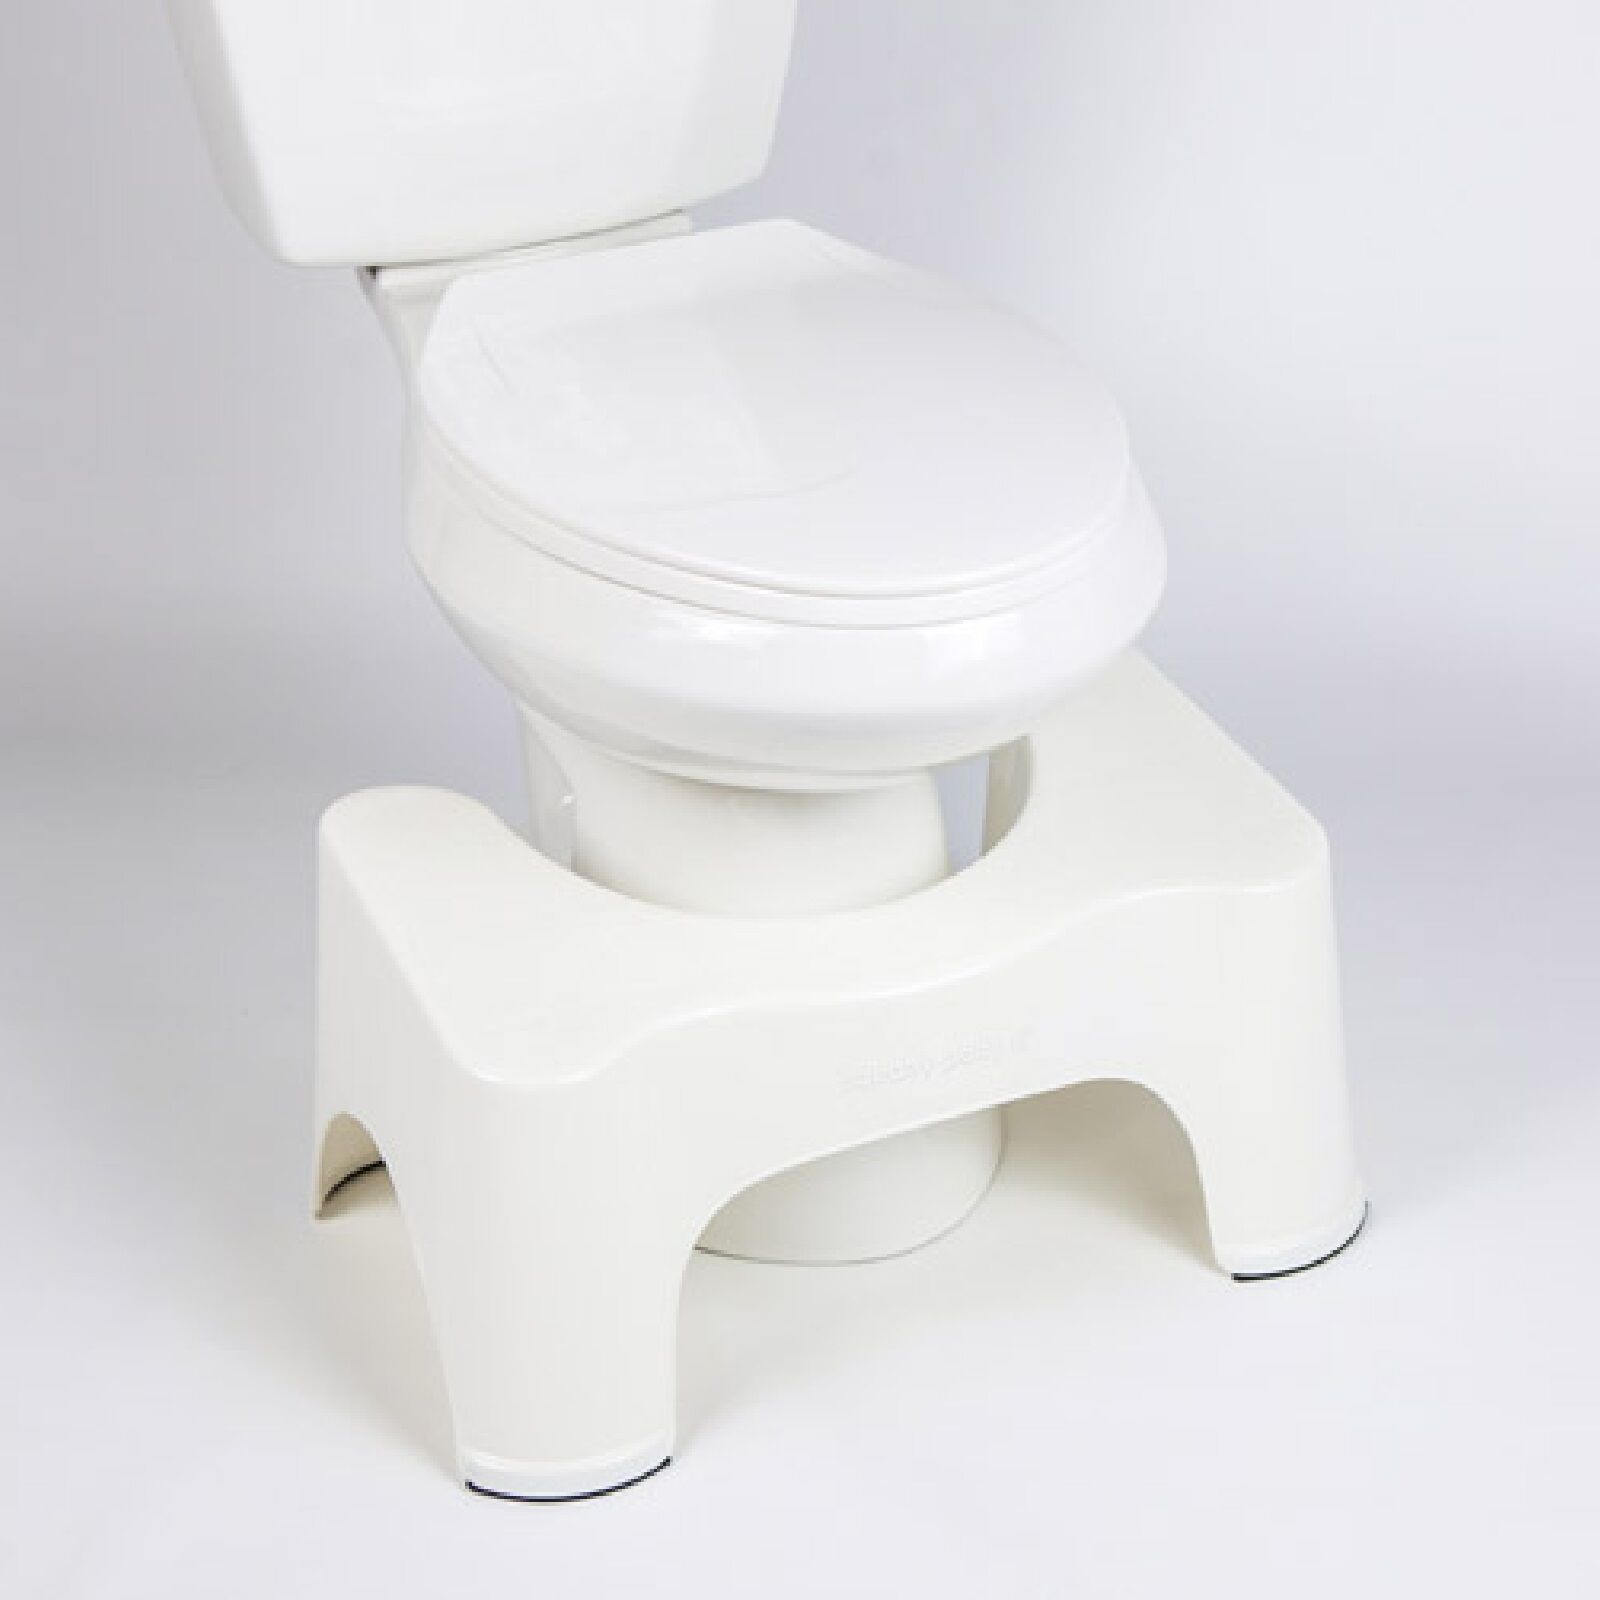 Toilet Squatty Step Stool Bathroom Potty Squat Aid For